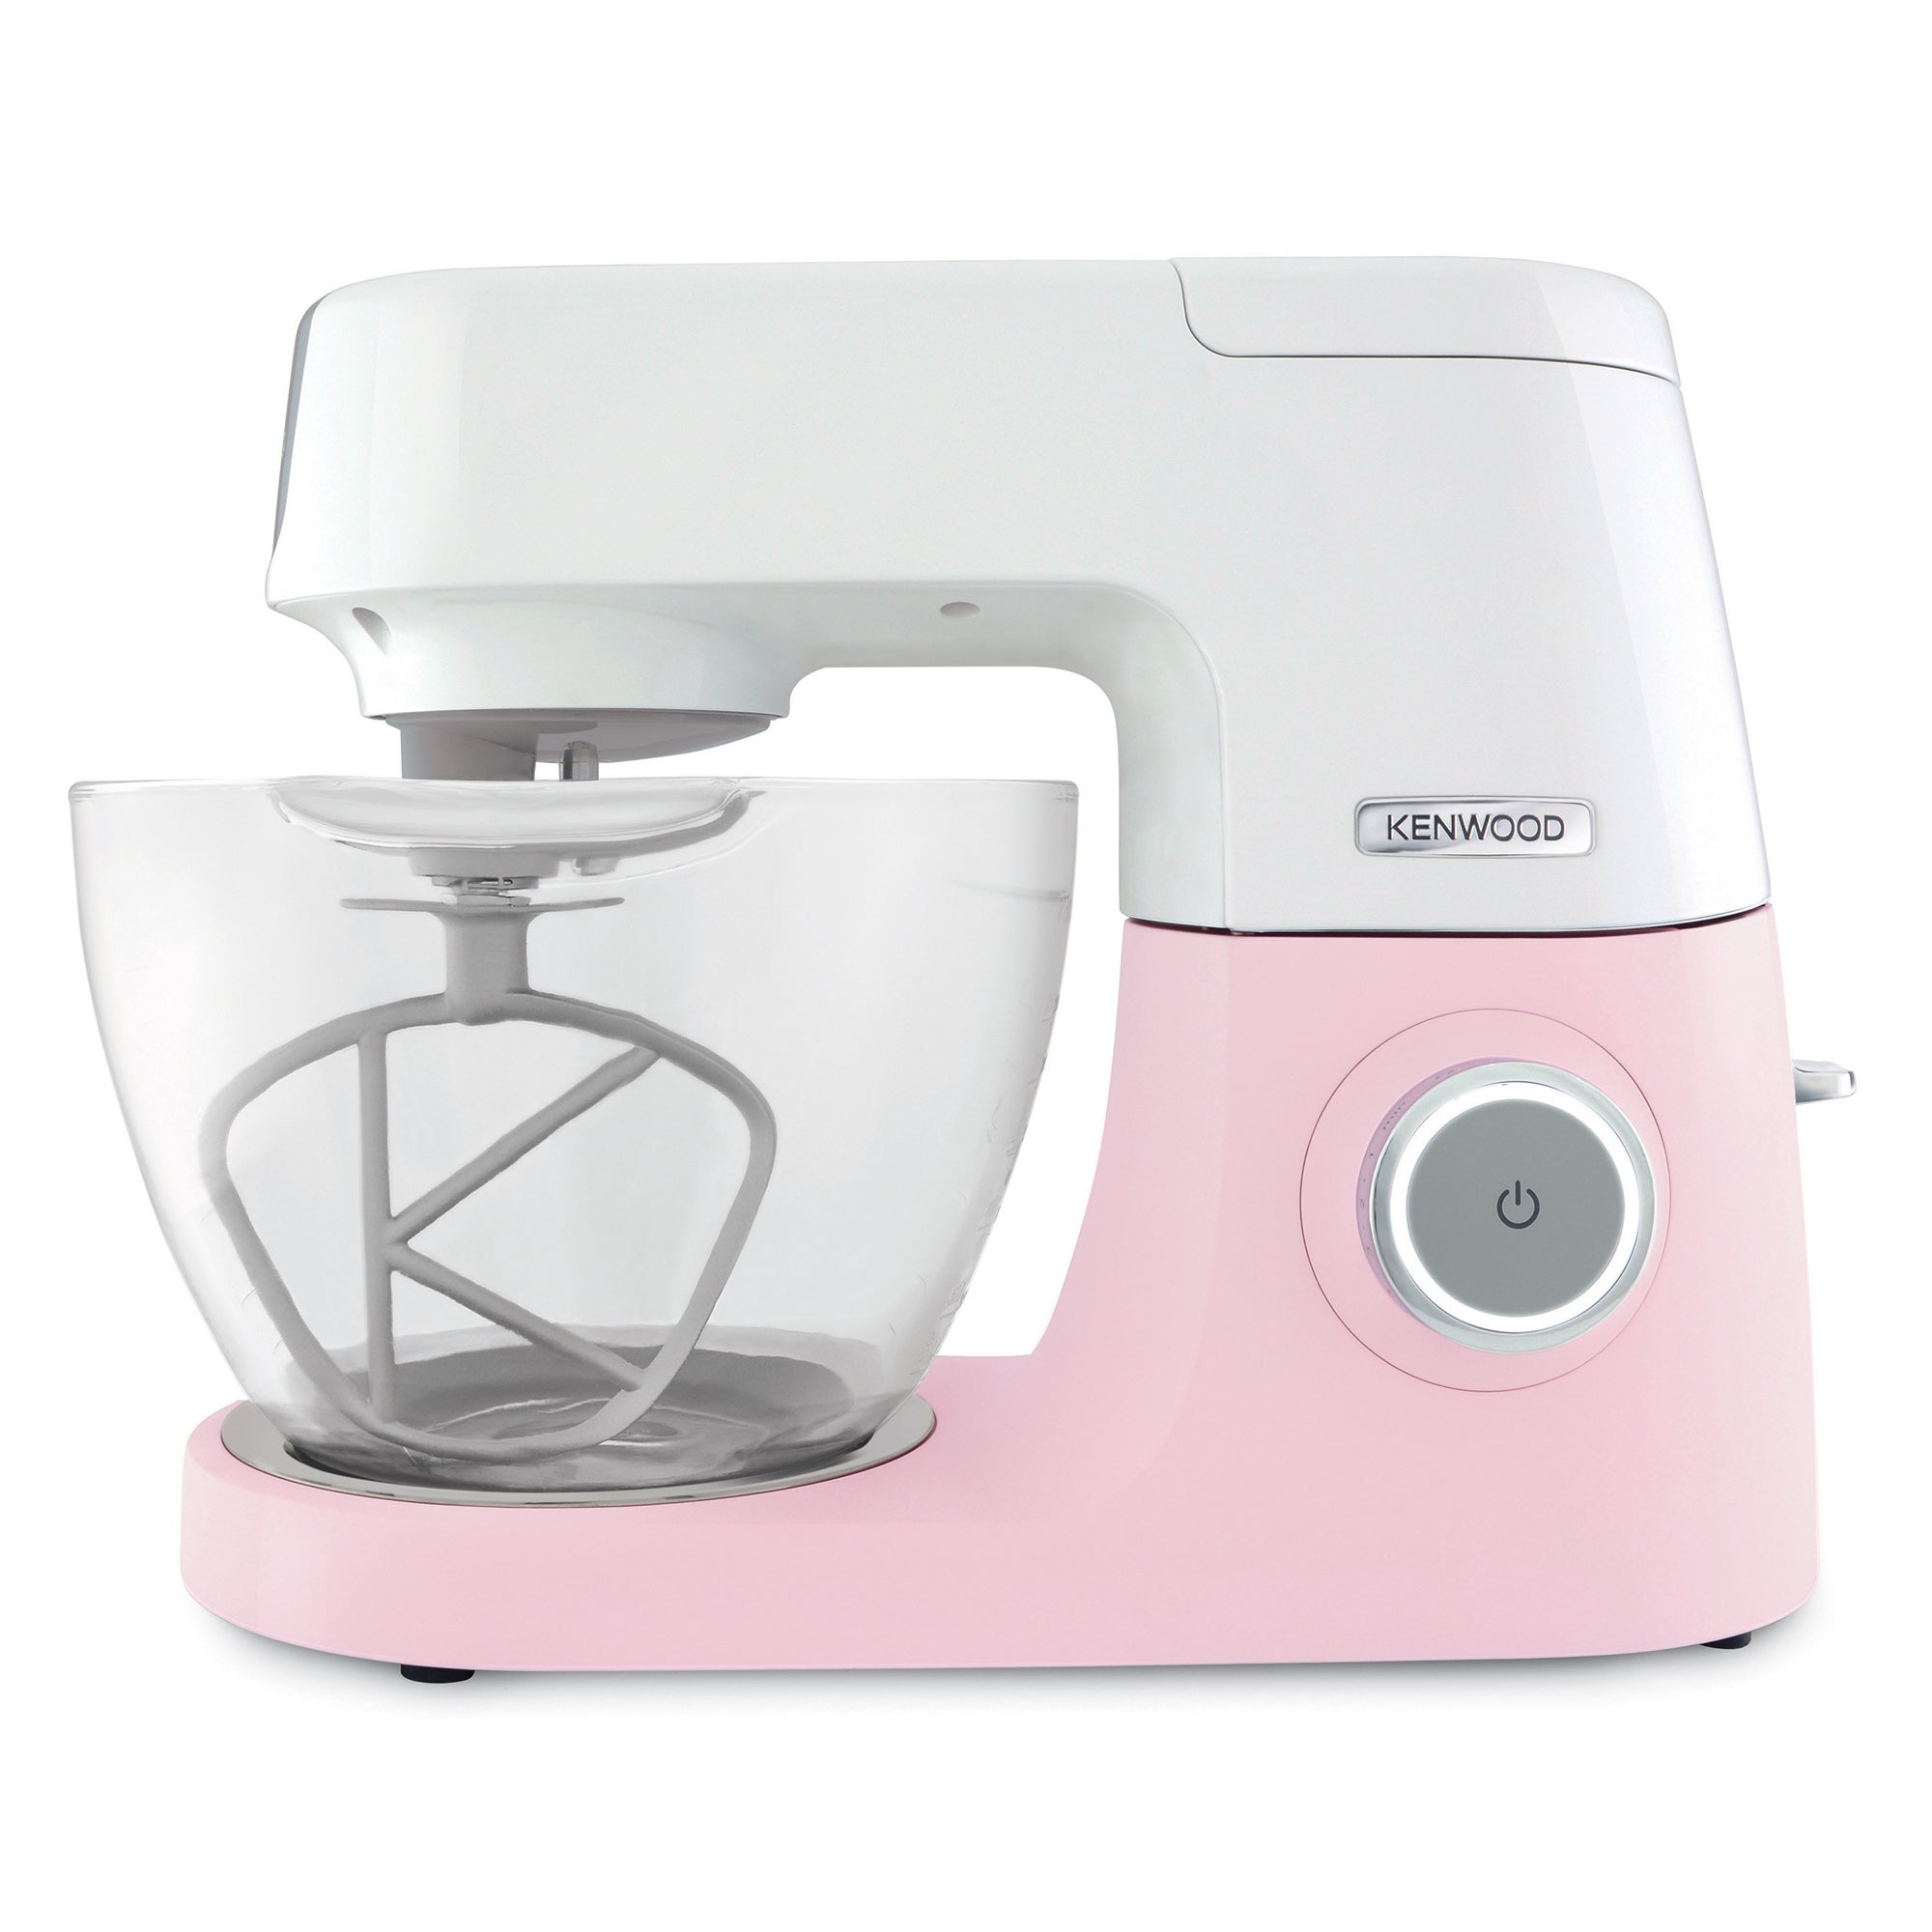 Kenwood Chef Sense Kitchen Machine Pink KVC5000P Pink